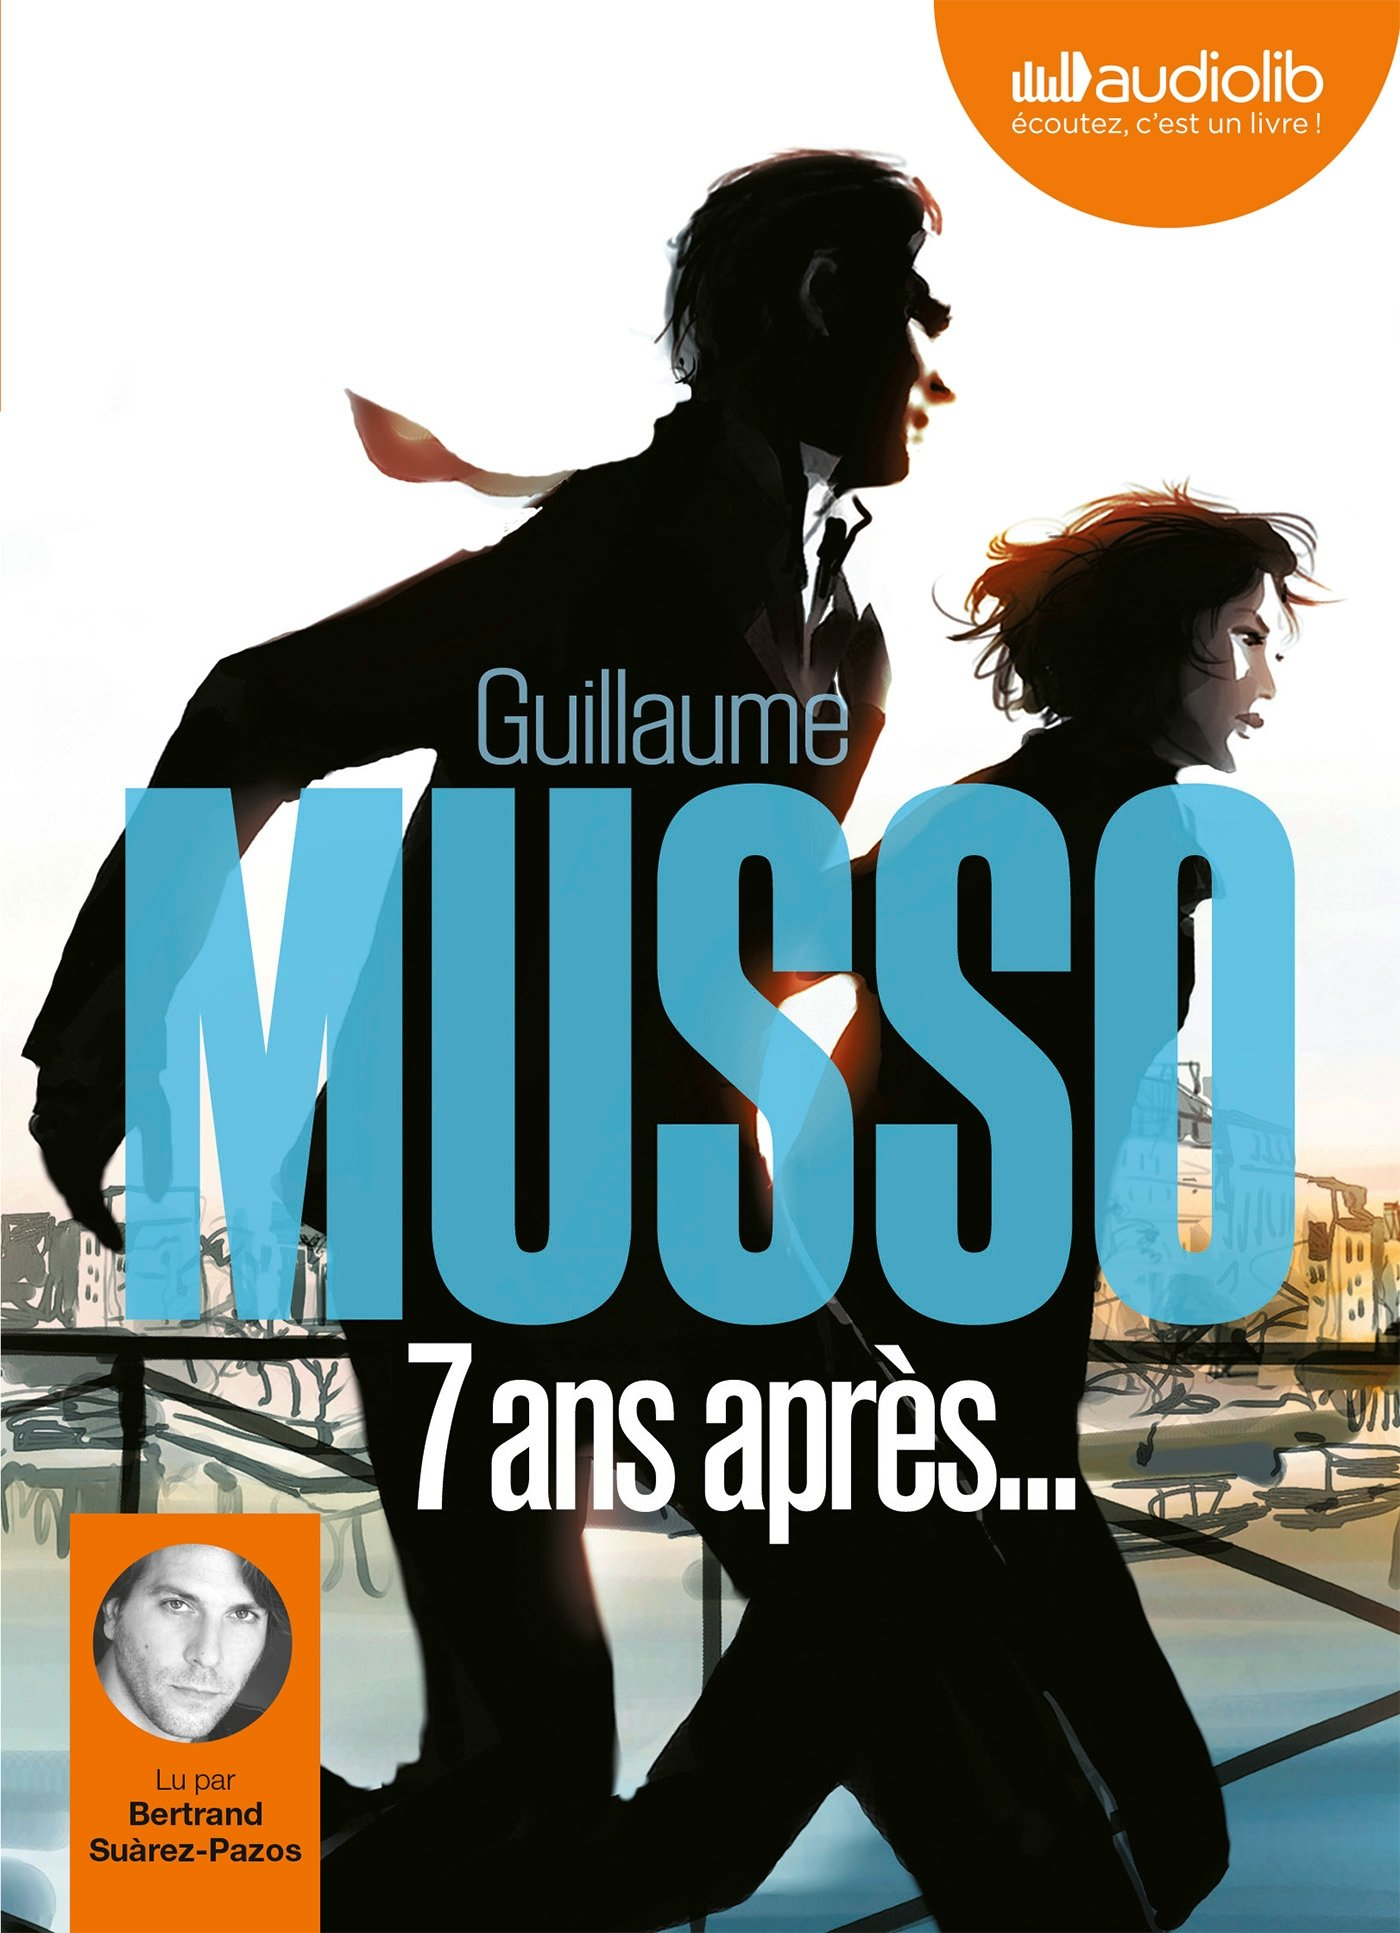 [EBOOKS AUDIO] GUILLAUME MUSSO 7 ans après [mp3 192 kbps]